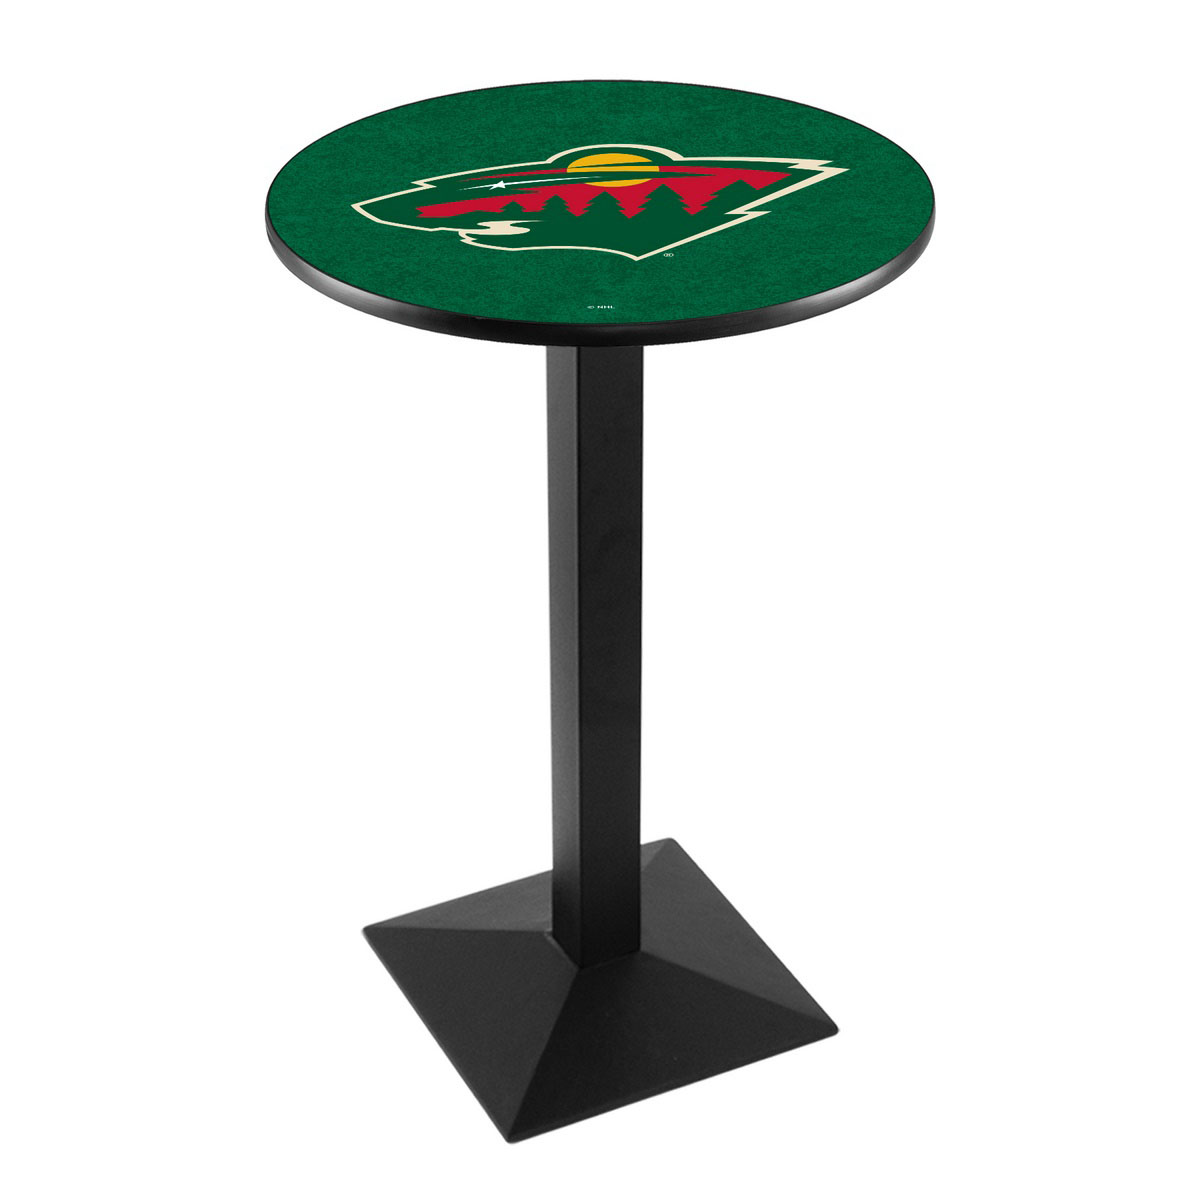 Select Minnesota-Wild-Logo-Pub-Bar-Table-Square-Stand Product Picture 1705